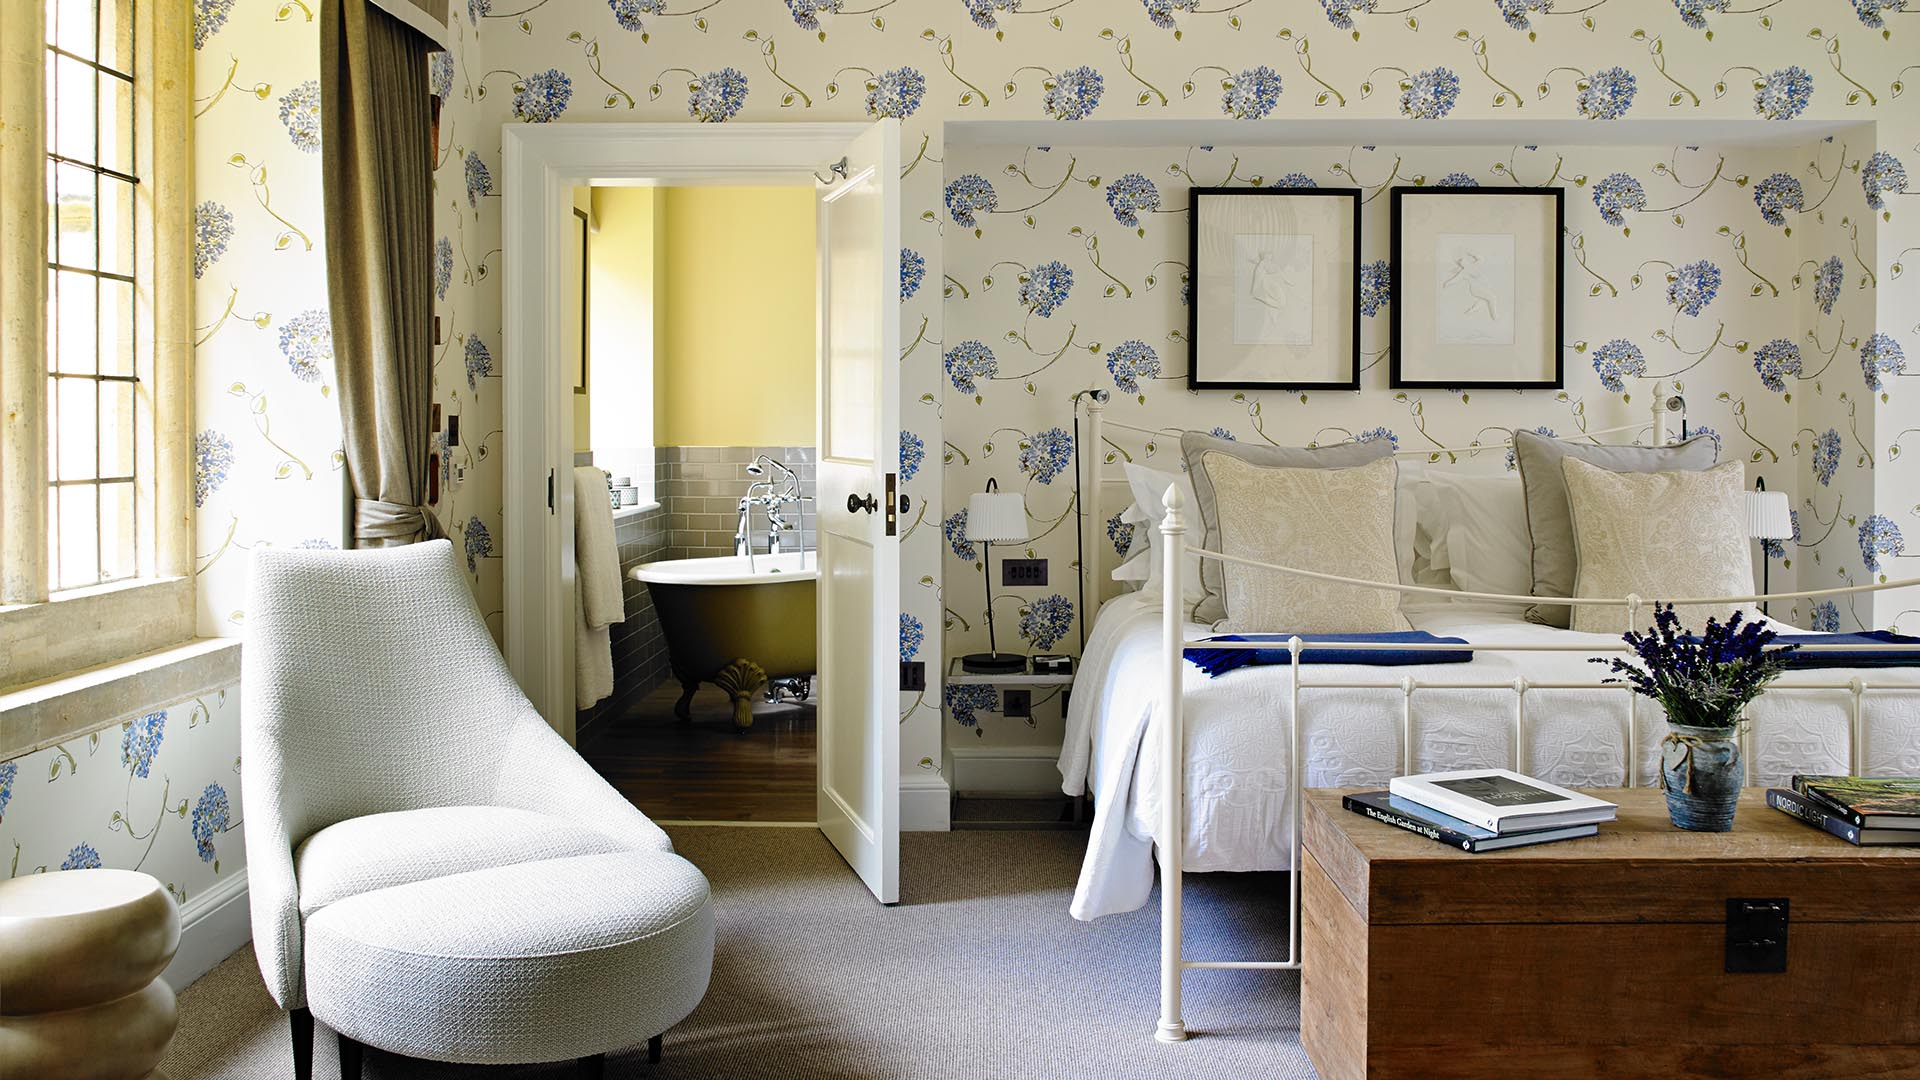 10 hotels with under 10 rooms: a look inside our smallest hotels